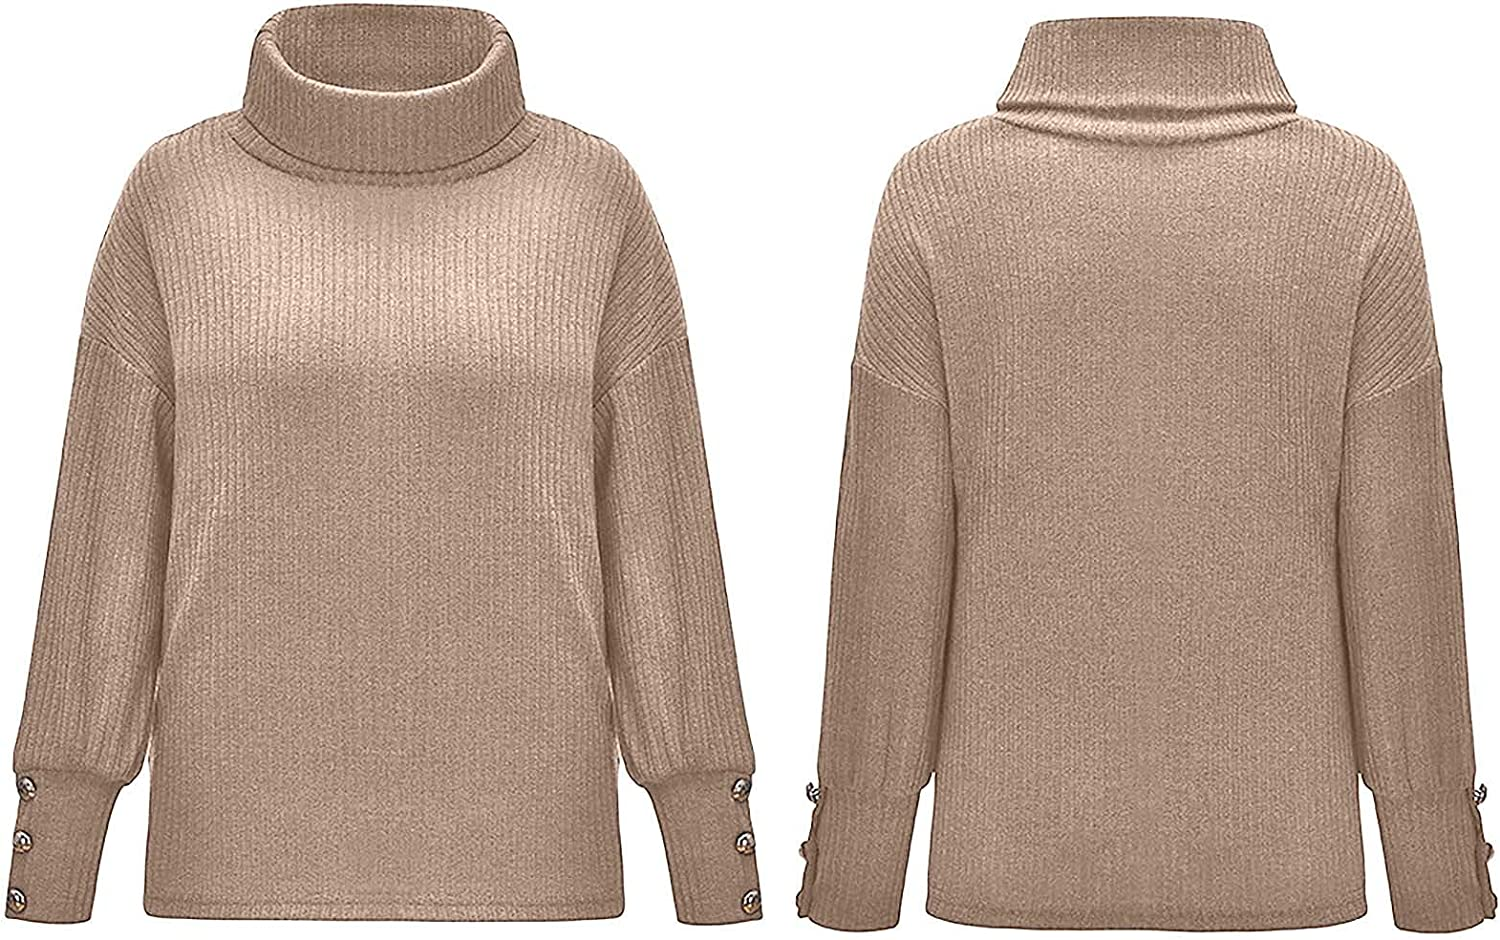 Women's Turtleneck Solid Color Sweaters Casual Long Sleeve Oversized Pullover Chunky Loose Fit Knit Tops with Buttons